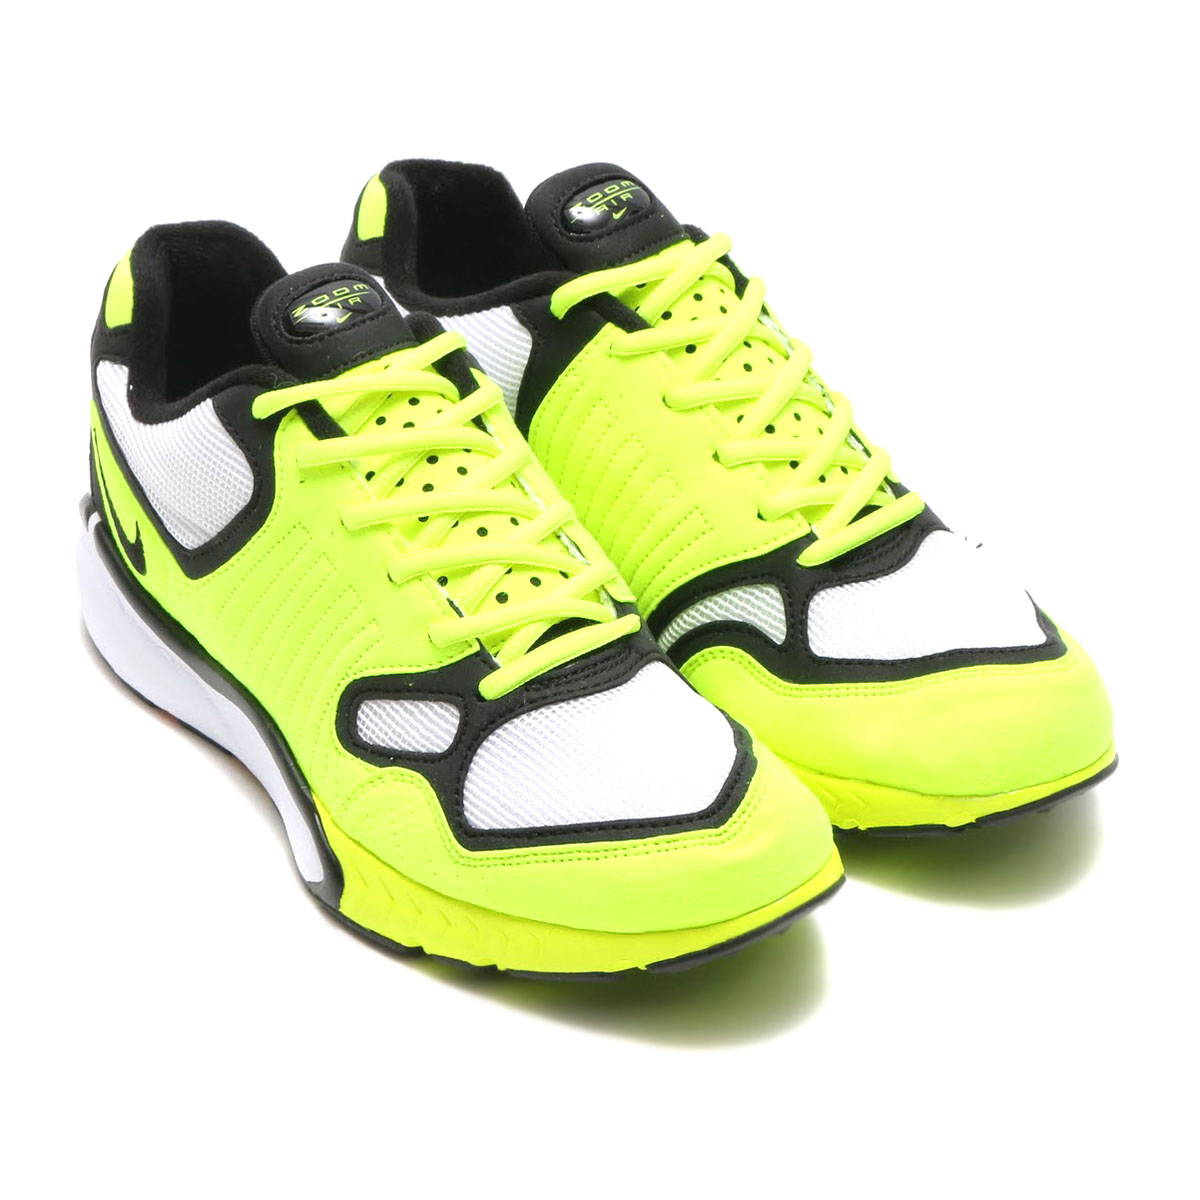 989eff612581 NIKE AIR ZOOM TALARIA  16 (Nike air zoom talaria 16)  (WHITE BLACK-VOLT-WHITE-CHILE RED) 17SP-I